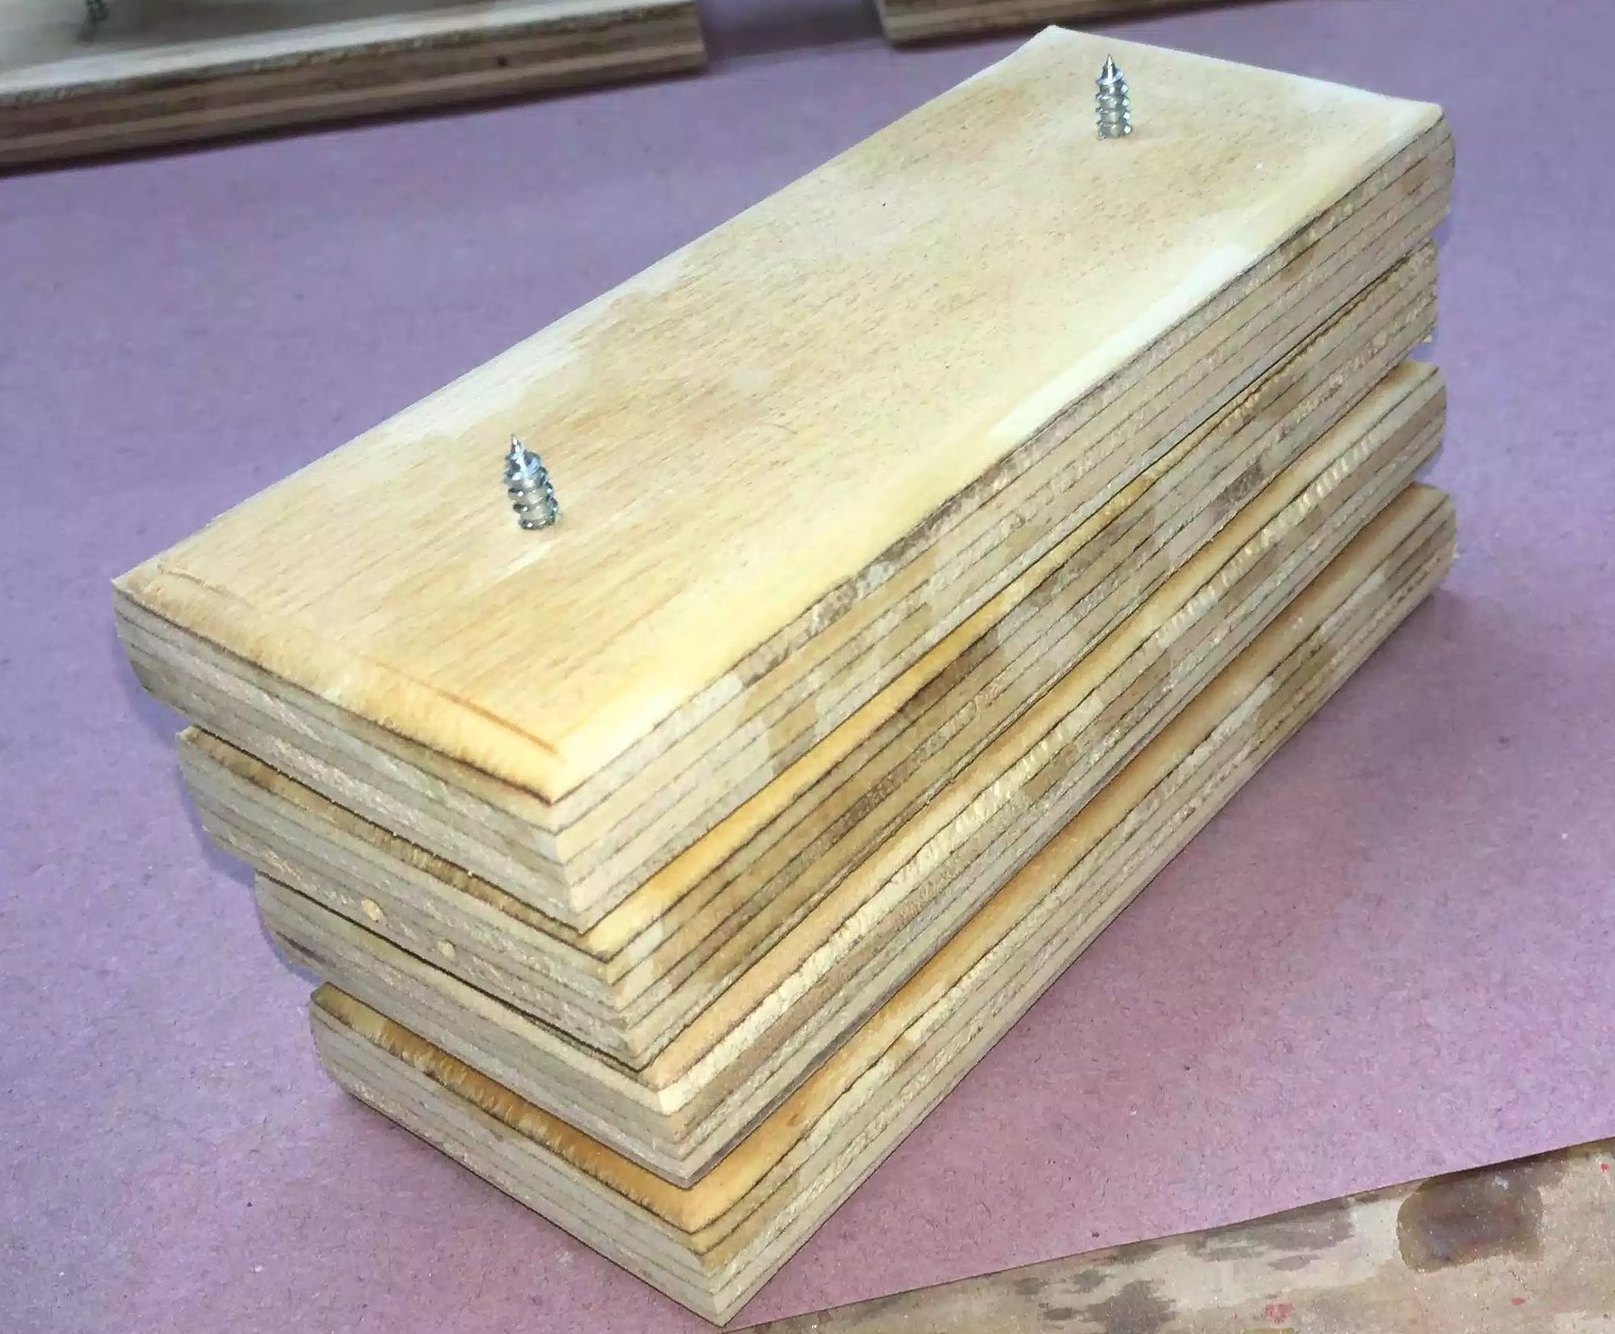 Here is a few stacked, makes storage easy. As you can see on one I have screws protruding through the top, this is what your work piece sits on while applying the finish.